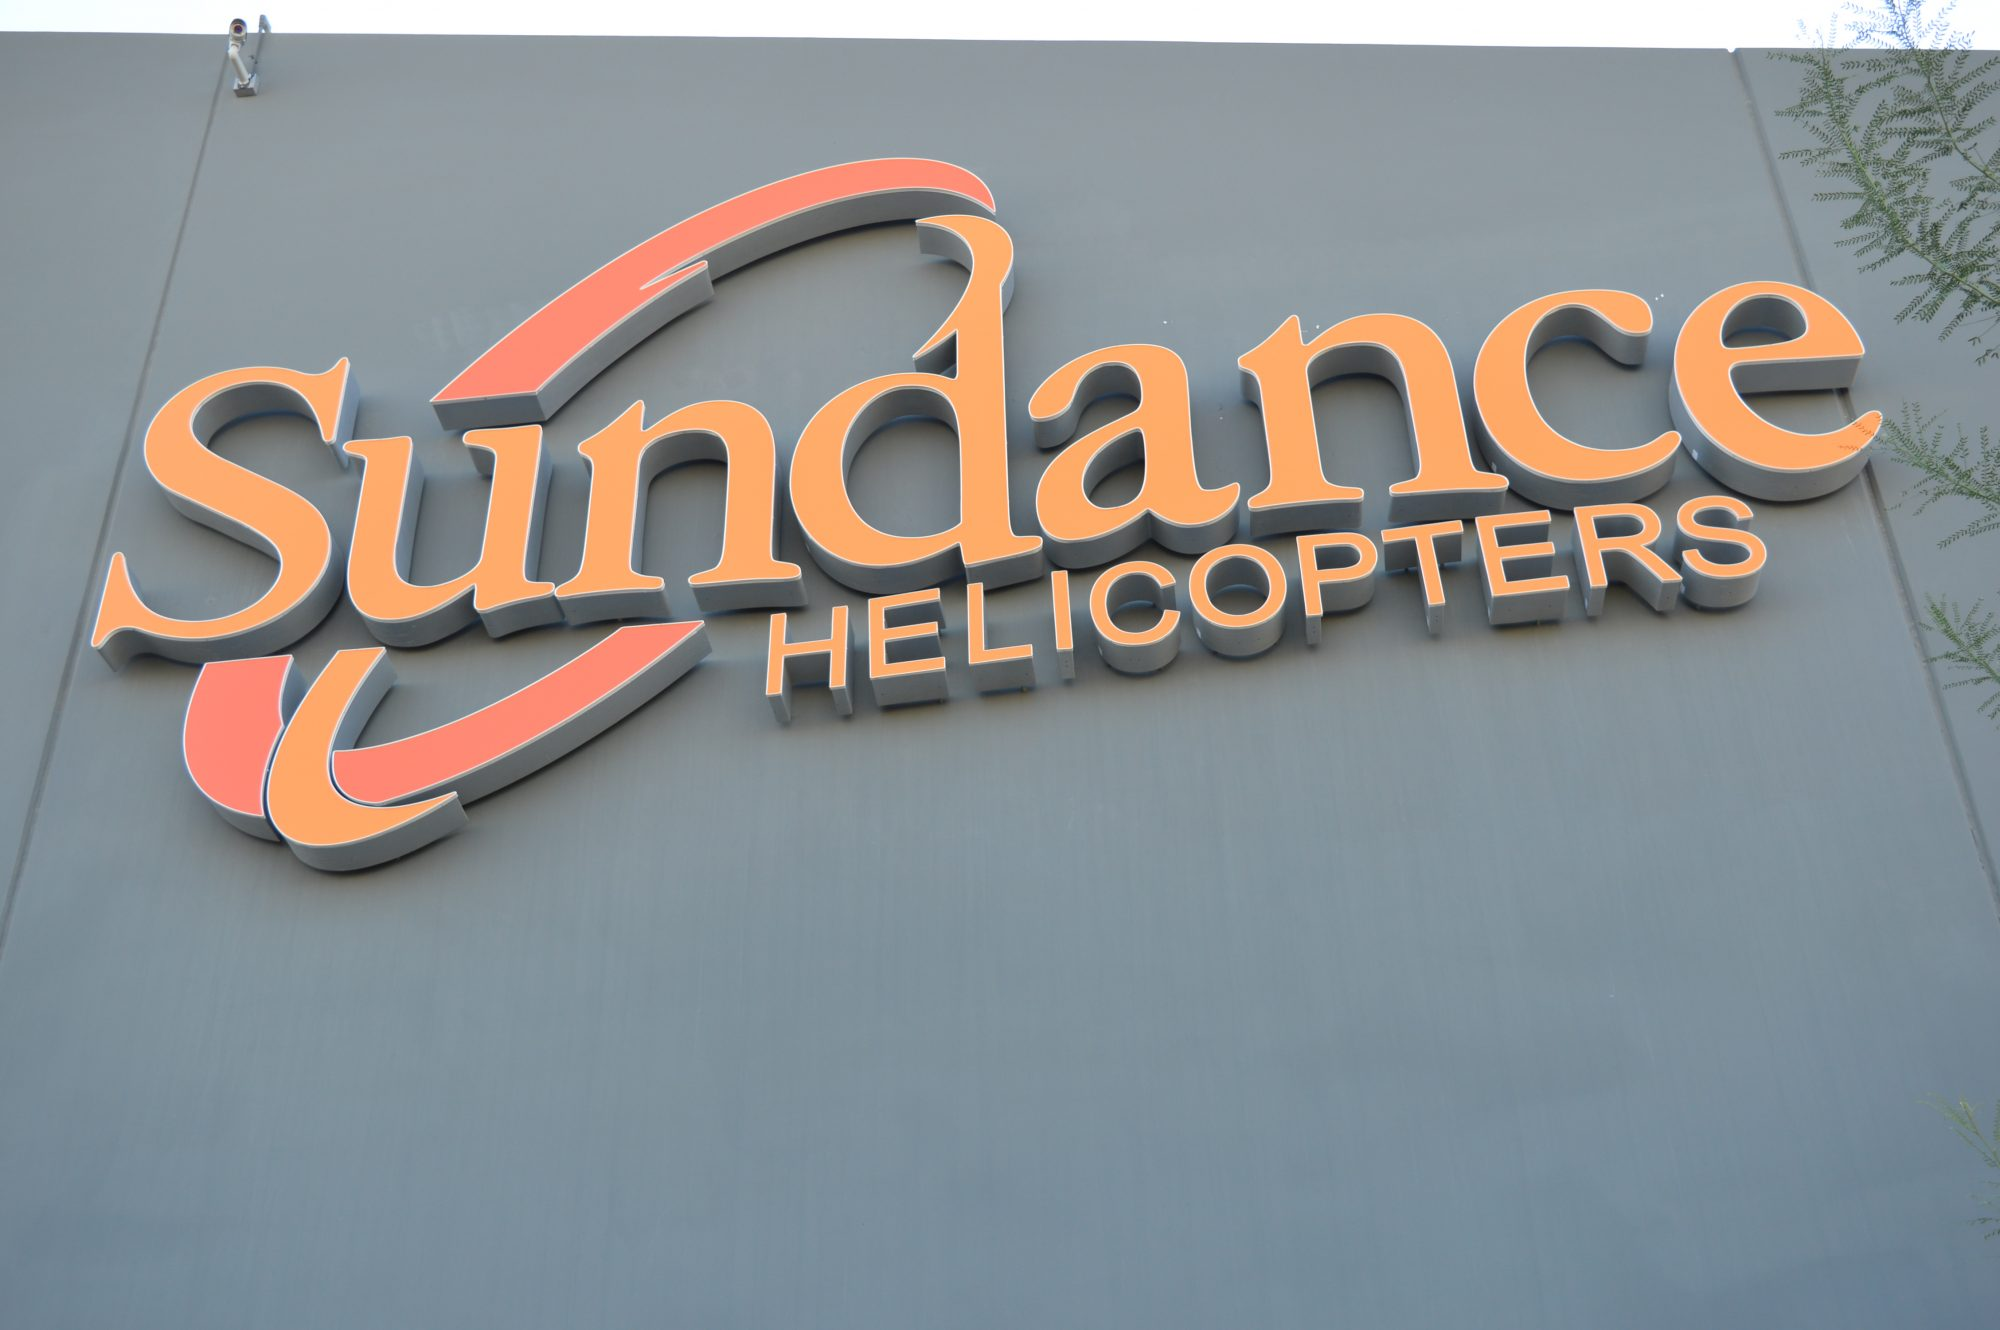 Sundance Helicopter Tours